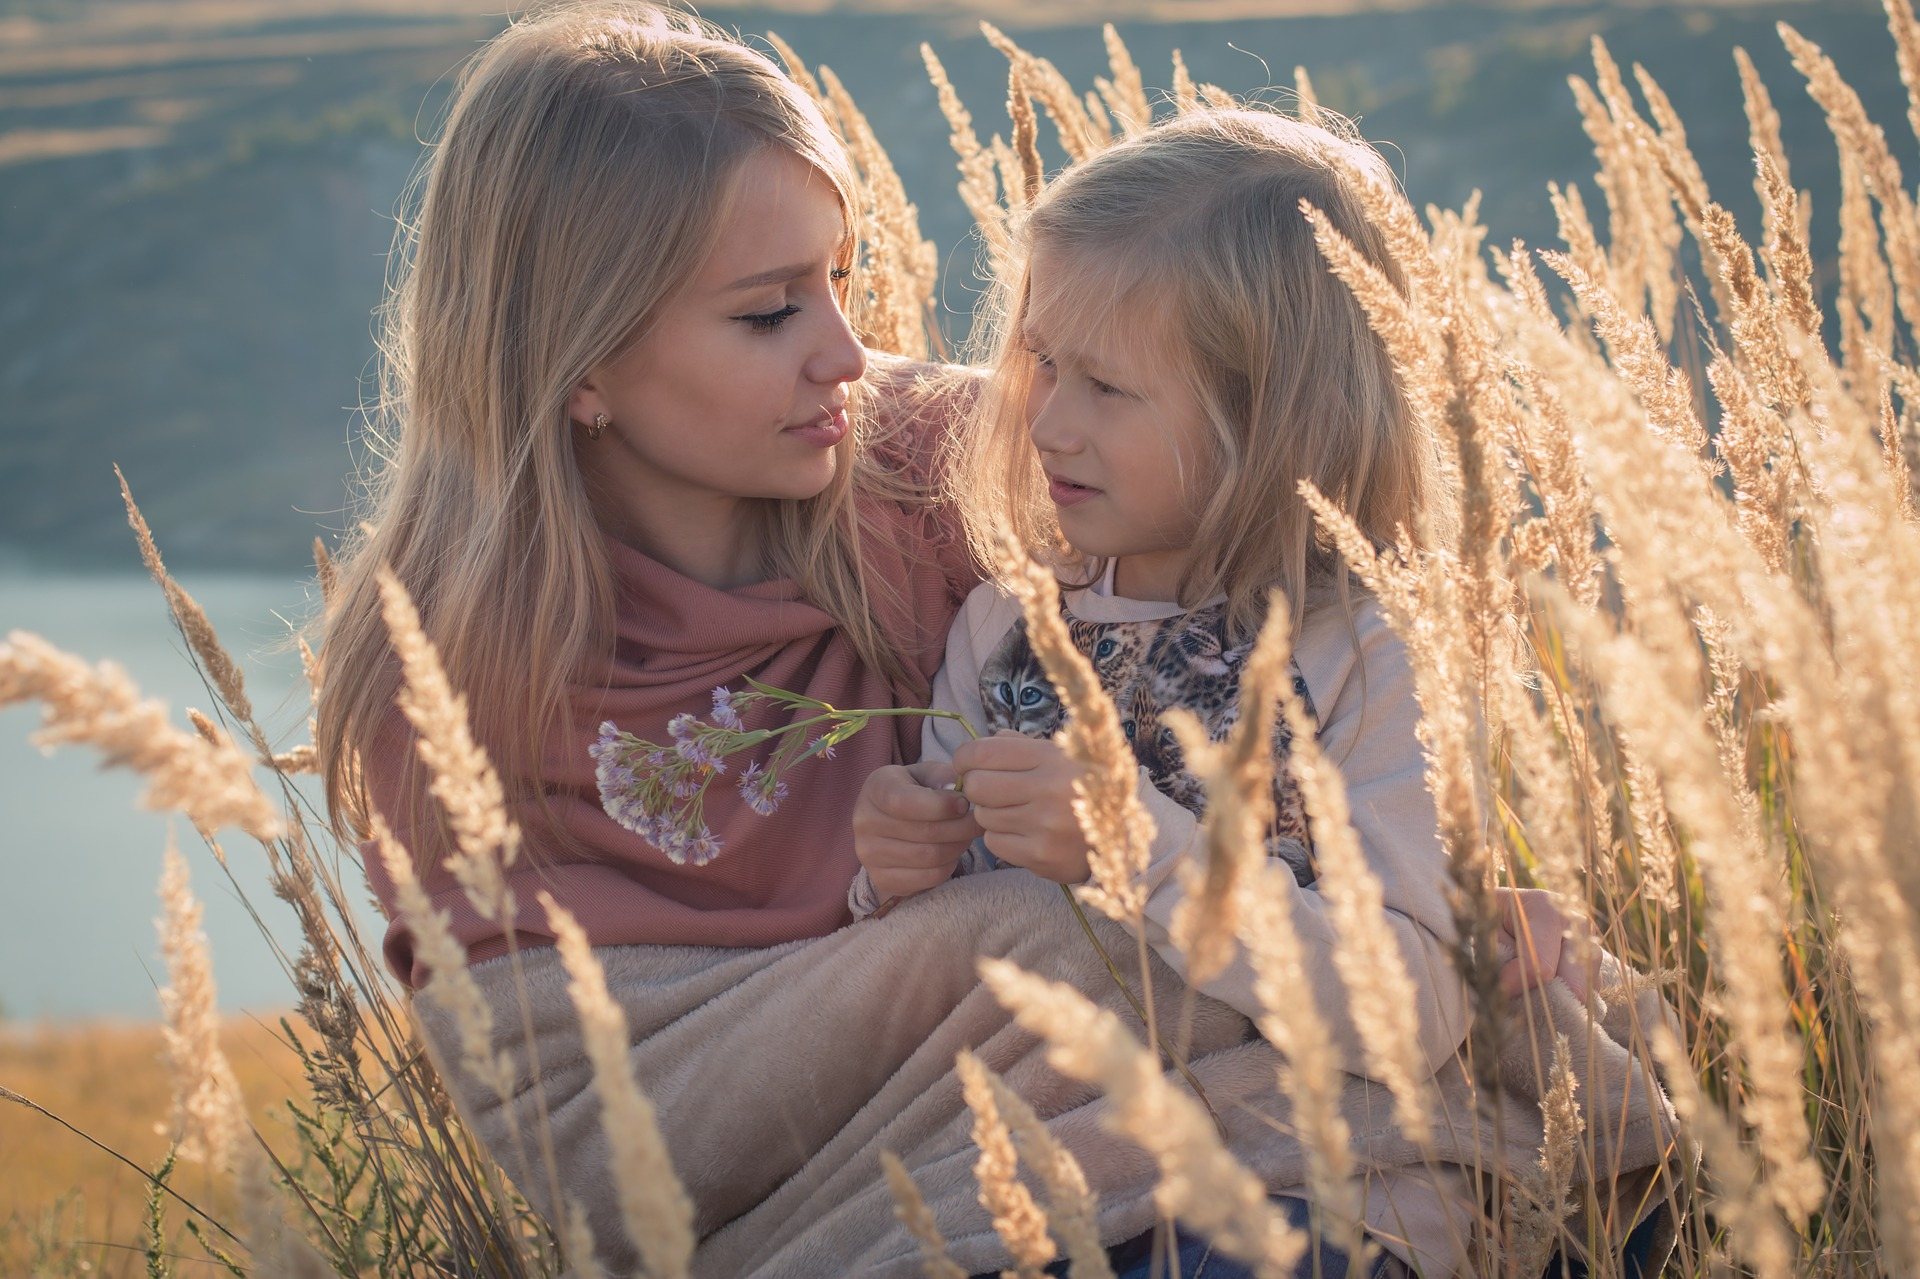 Mother and young daughter sitting in a field.